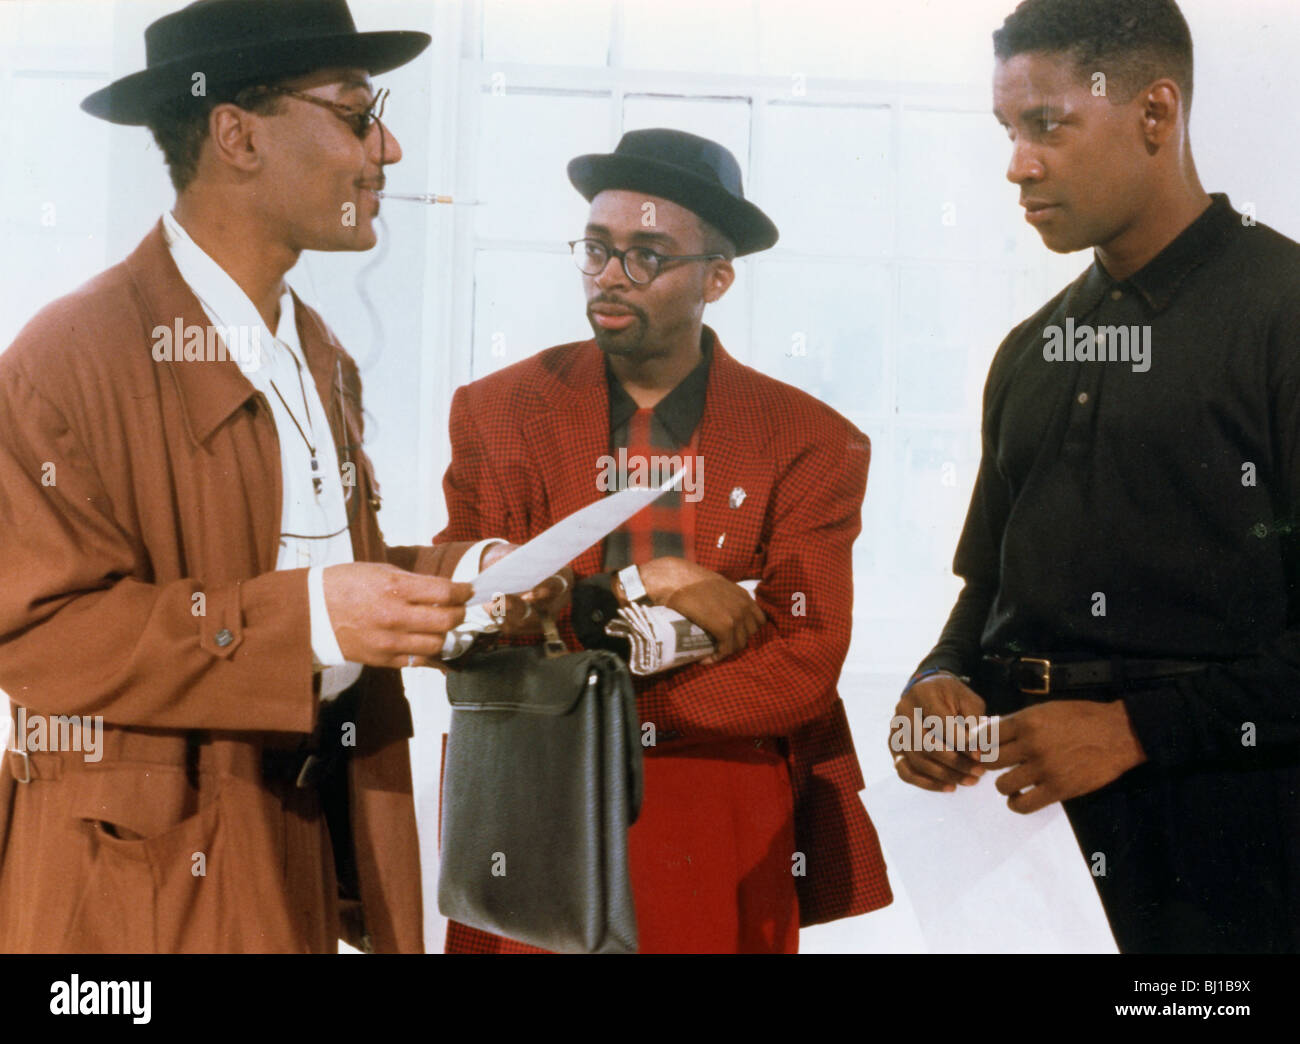 MO' BETTER BLUES - 1990 UIP/40 Acres film with  from l: Wesley Snipes,Spike Lee  and Denzel Washington - Stock Image